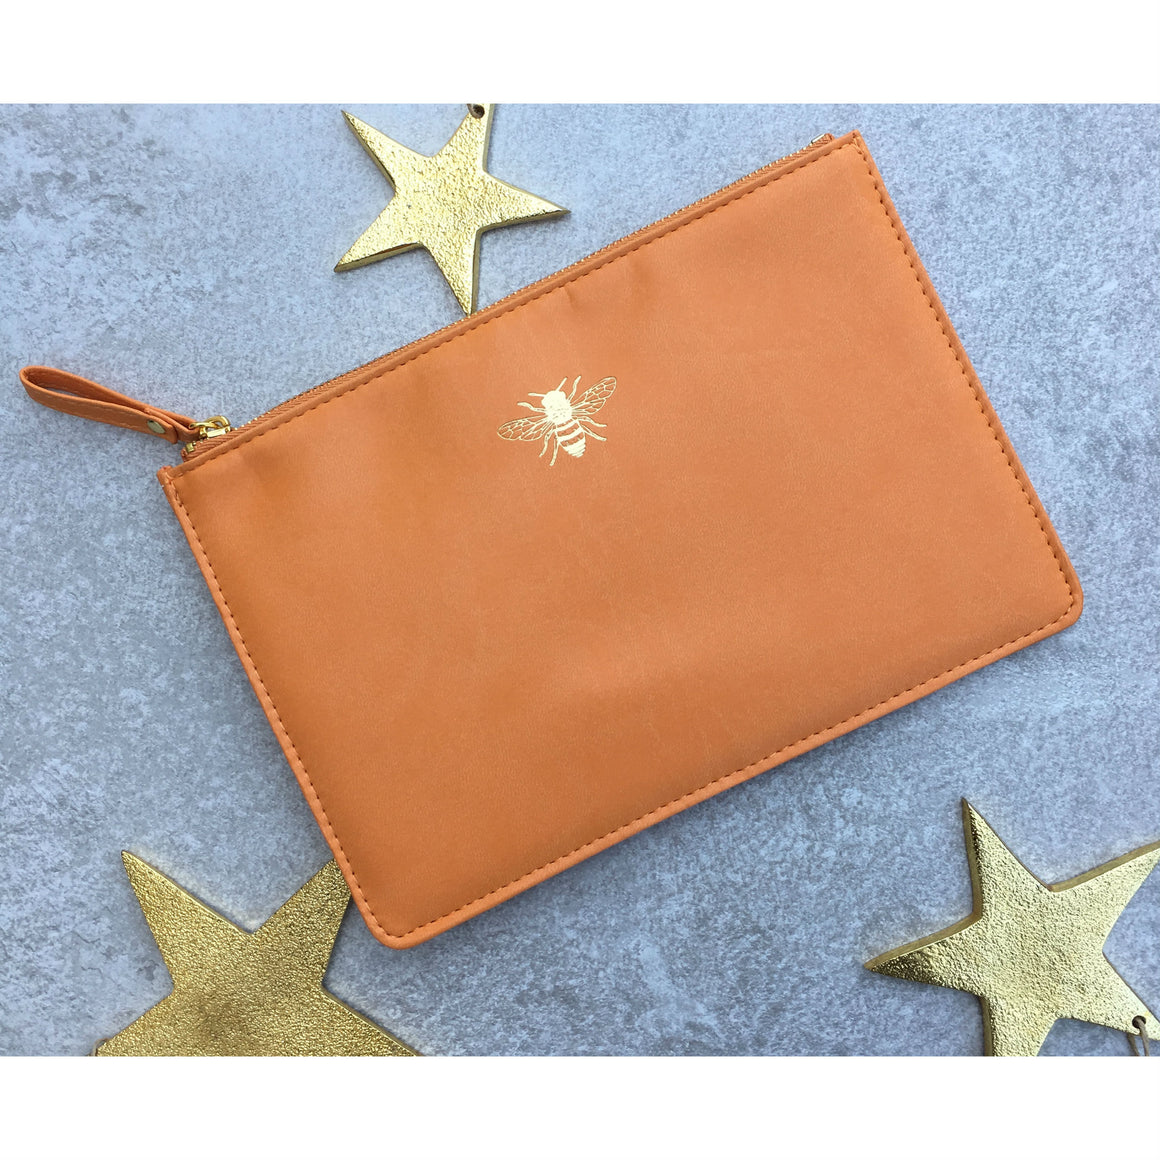 Sky + Miller Bee Faux Leather Pouch - The Love Trees